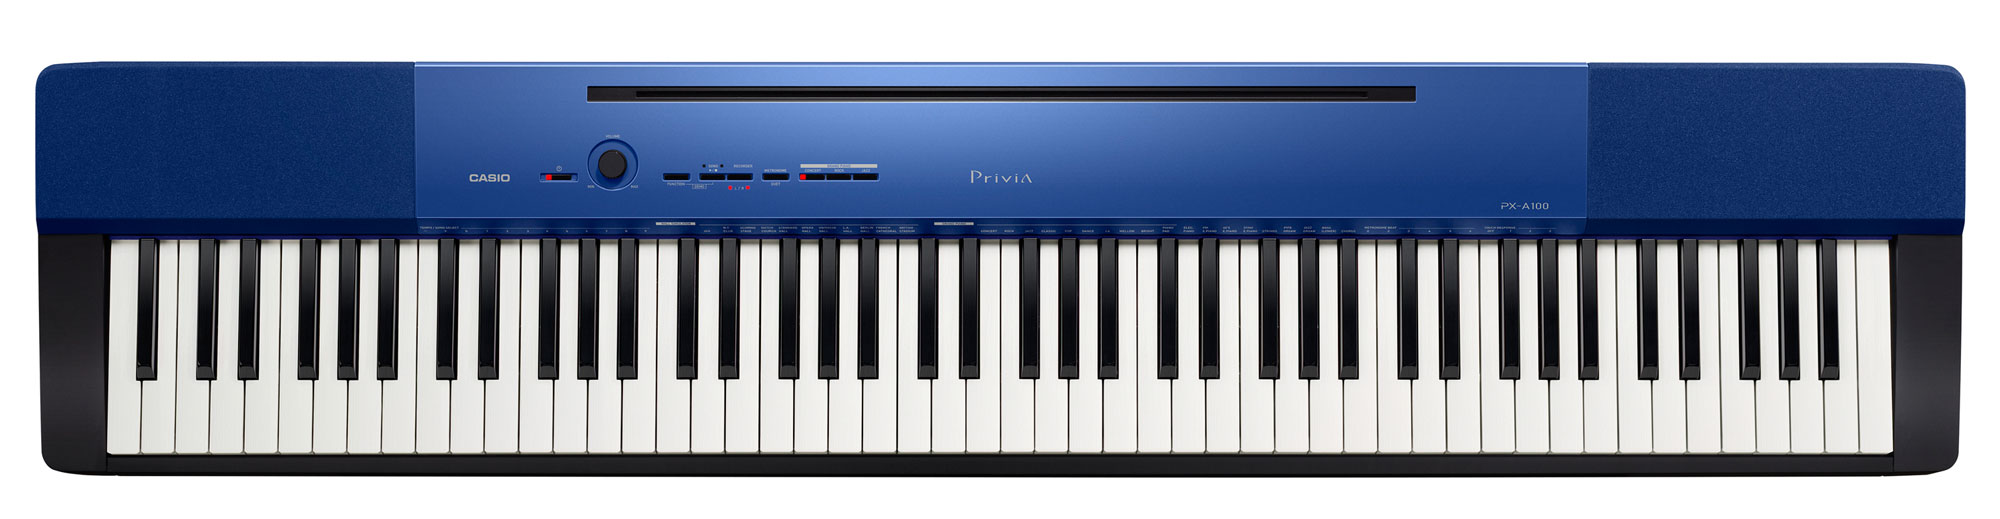 casio privia px a100 be e piano. Black Bedroom Furniture Sets. Home Design Ideas